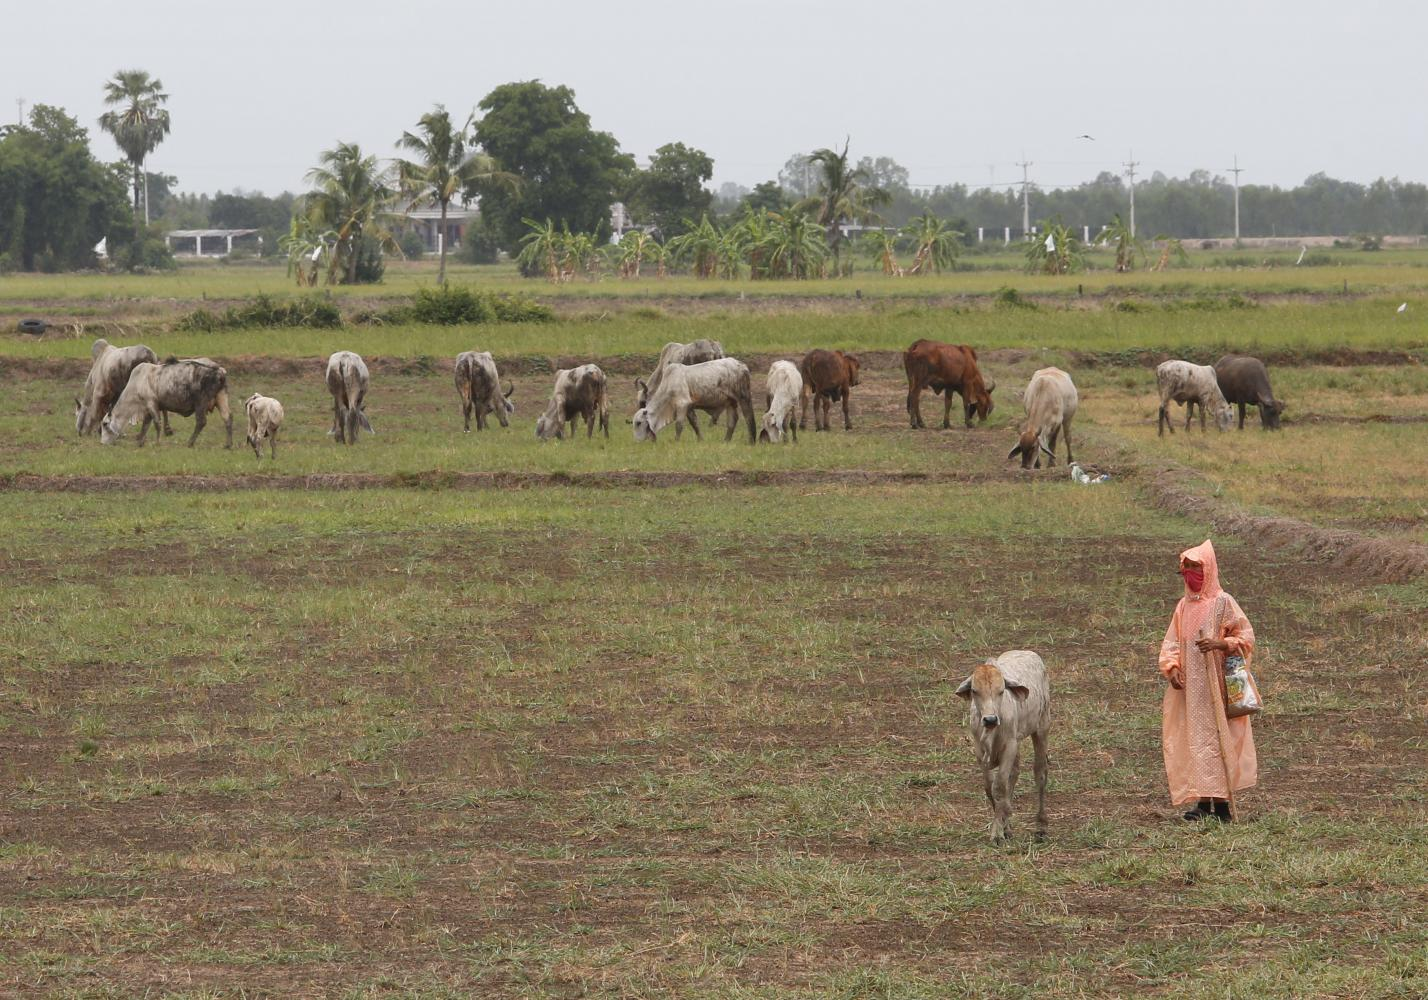 Dry bites: Cows graze on what was previously a rice field in Suphan Buri's U Thong district. The prolonged drought, which has forced many farmers to stop growing rice in Suphan Buri, is worsening across several provinces.